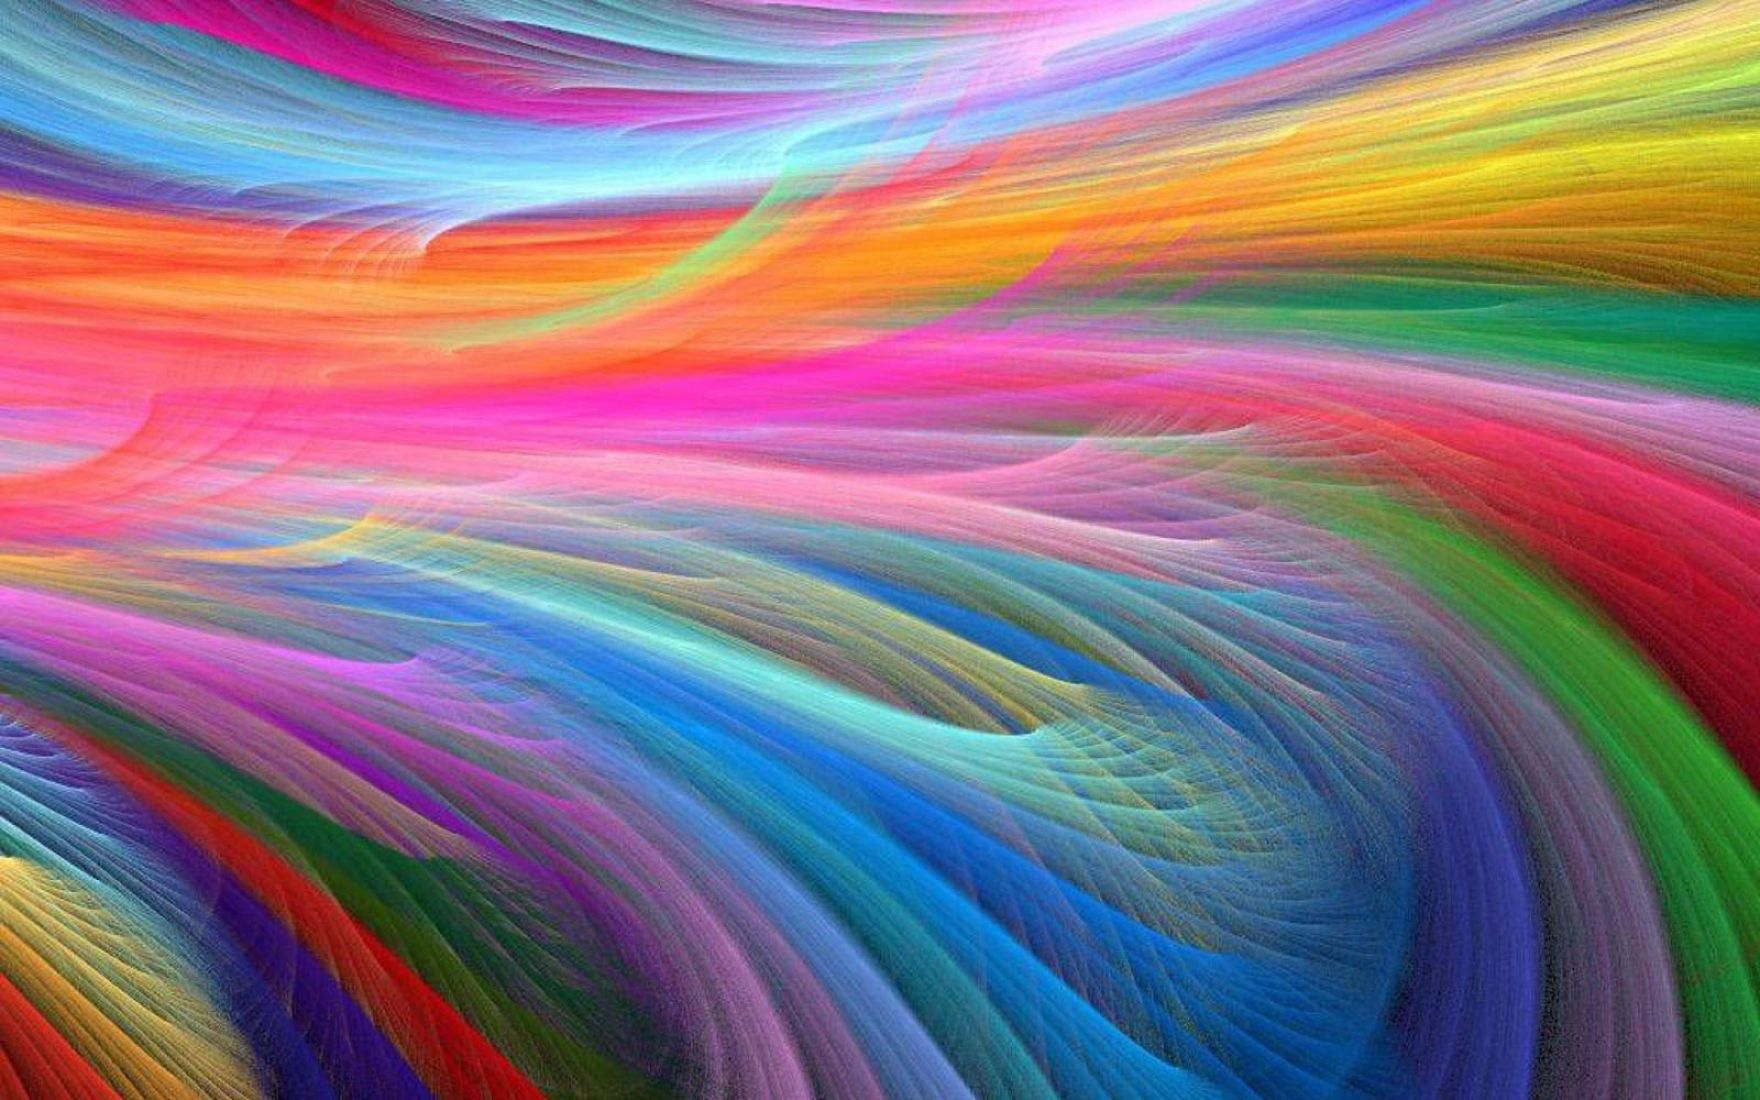 Colorful Abstract Art Desktop Wallpaper Desktop Hd Wallpaper in The Amazing free abstract art wallpaper downloads for your inspiration